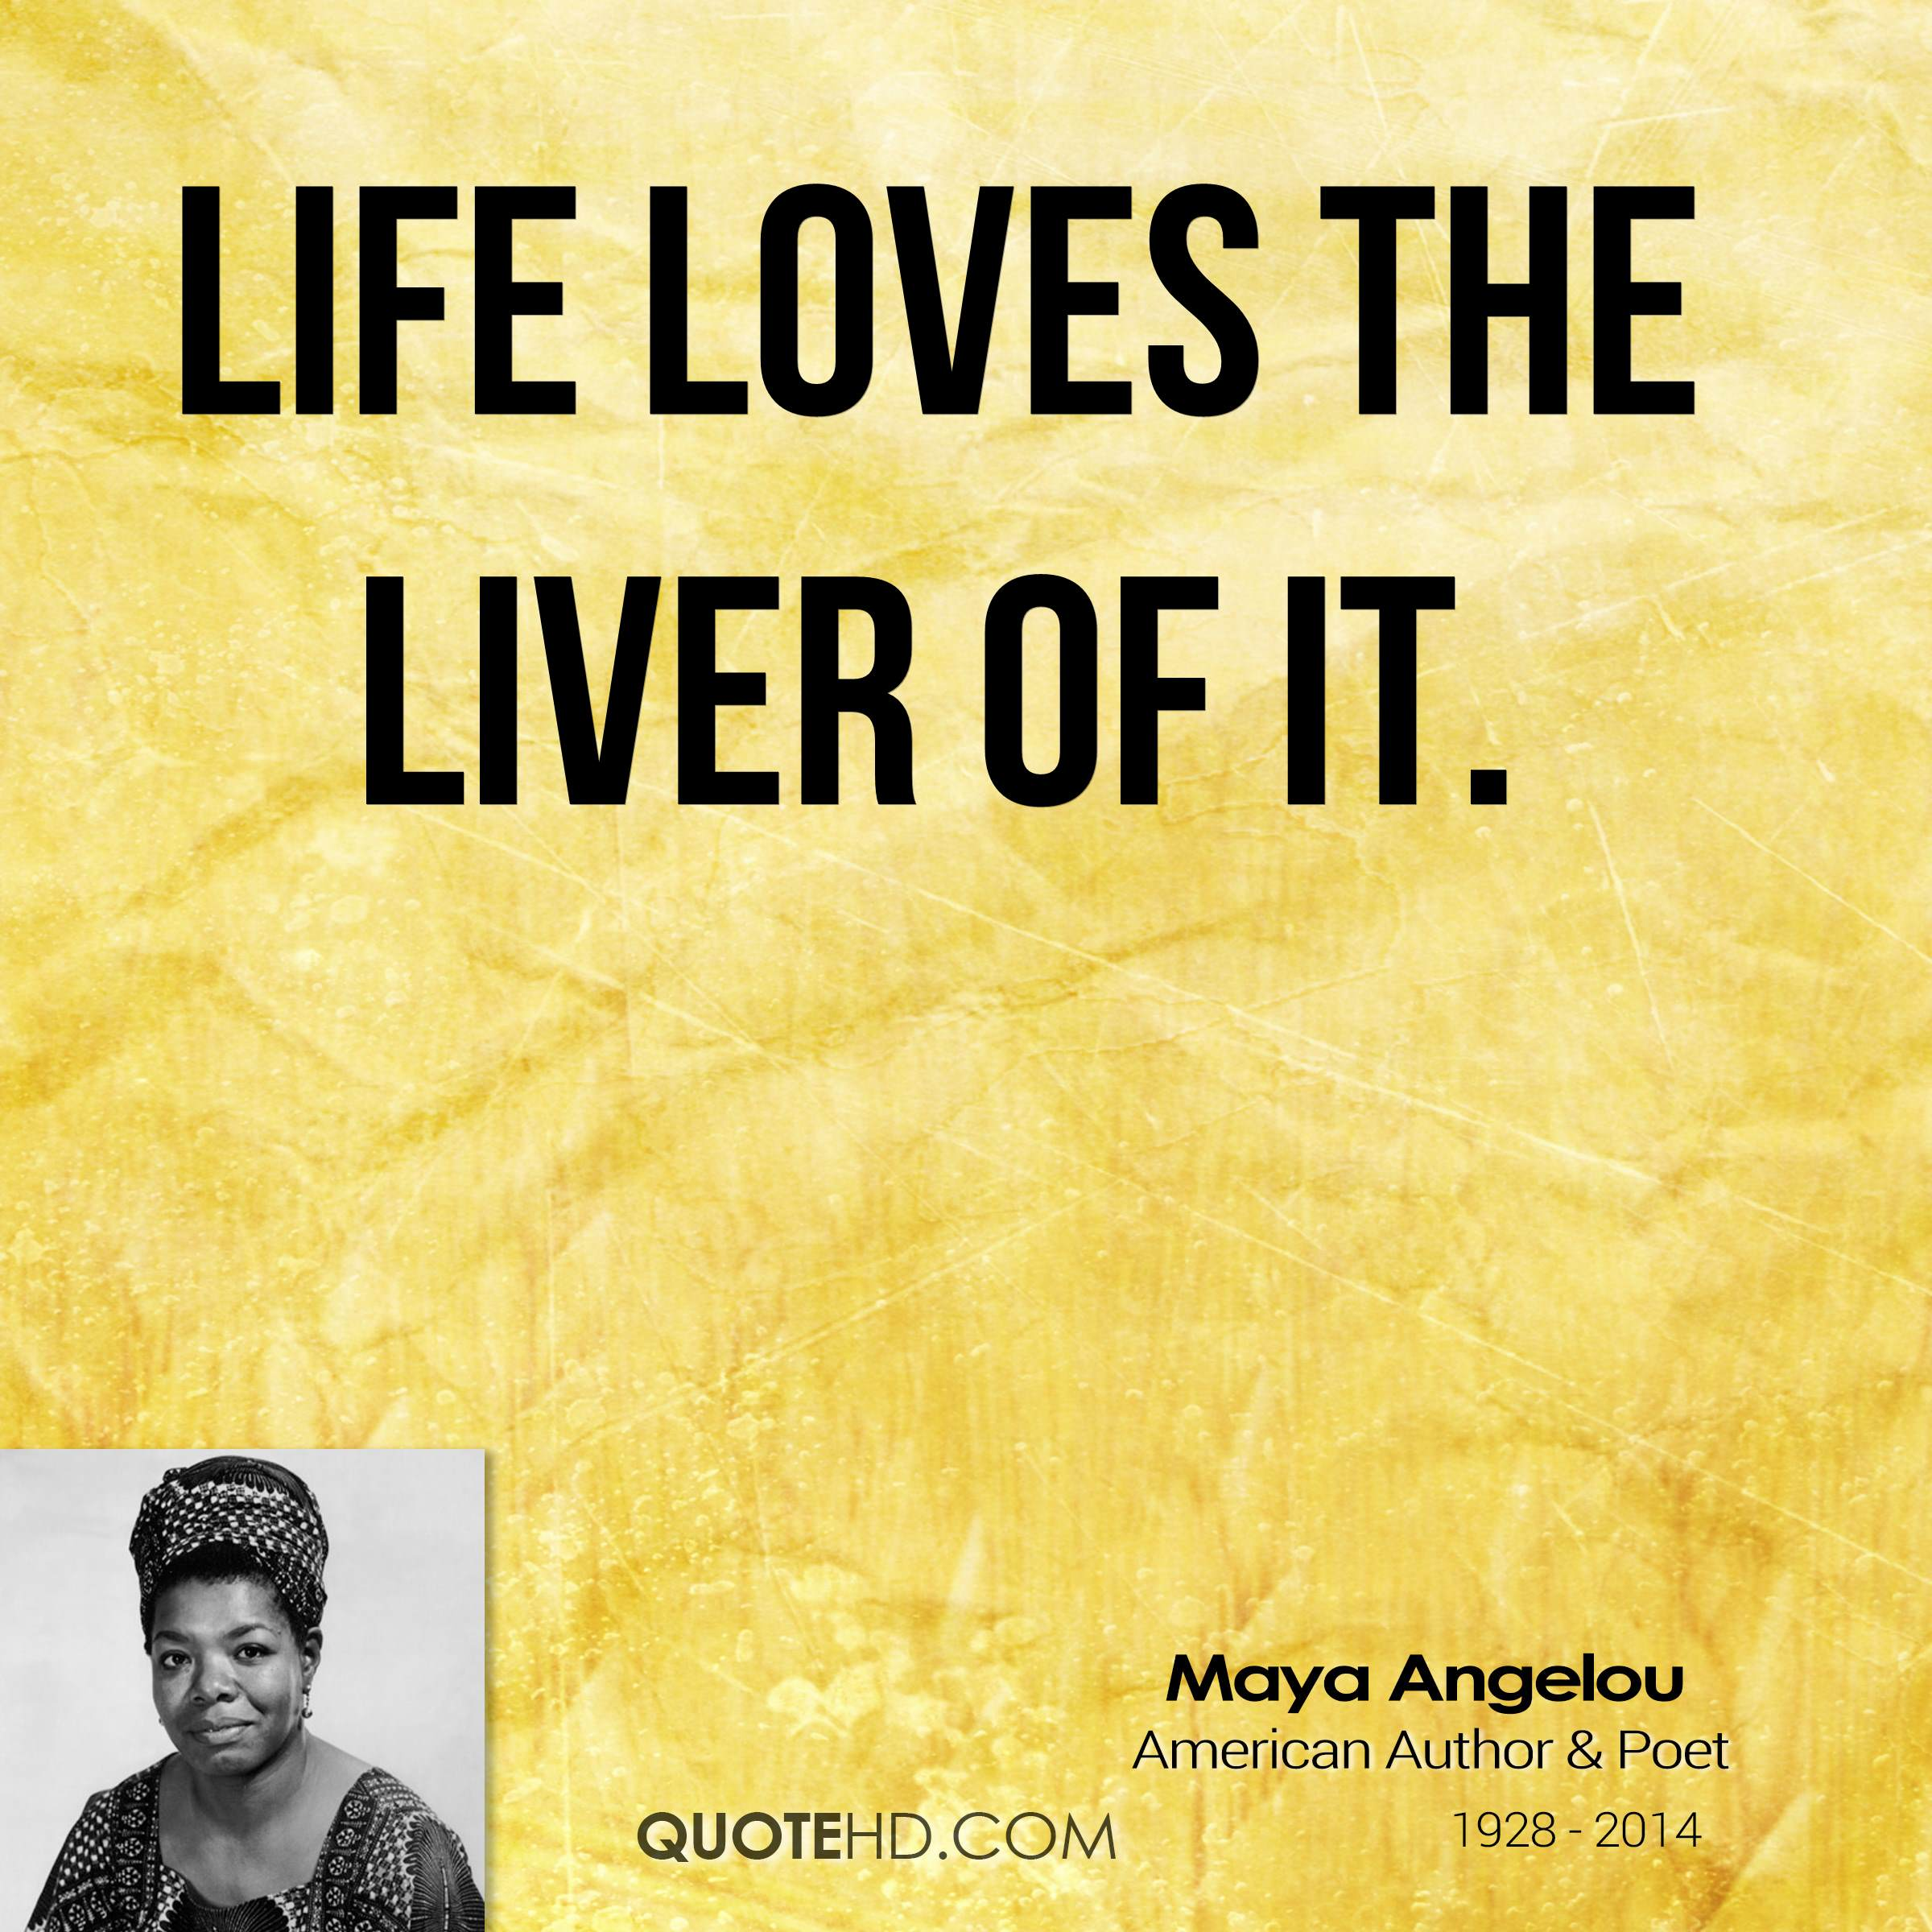 sister monroe by maya angelou essay An analysis of maya angelou's hilarious short story sister monroe this handout begins with a discussion of what typically makes people laugh five characteristics of humor are listed and applied to angelou's story.